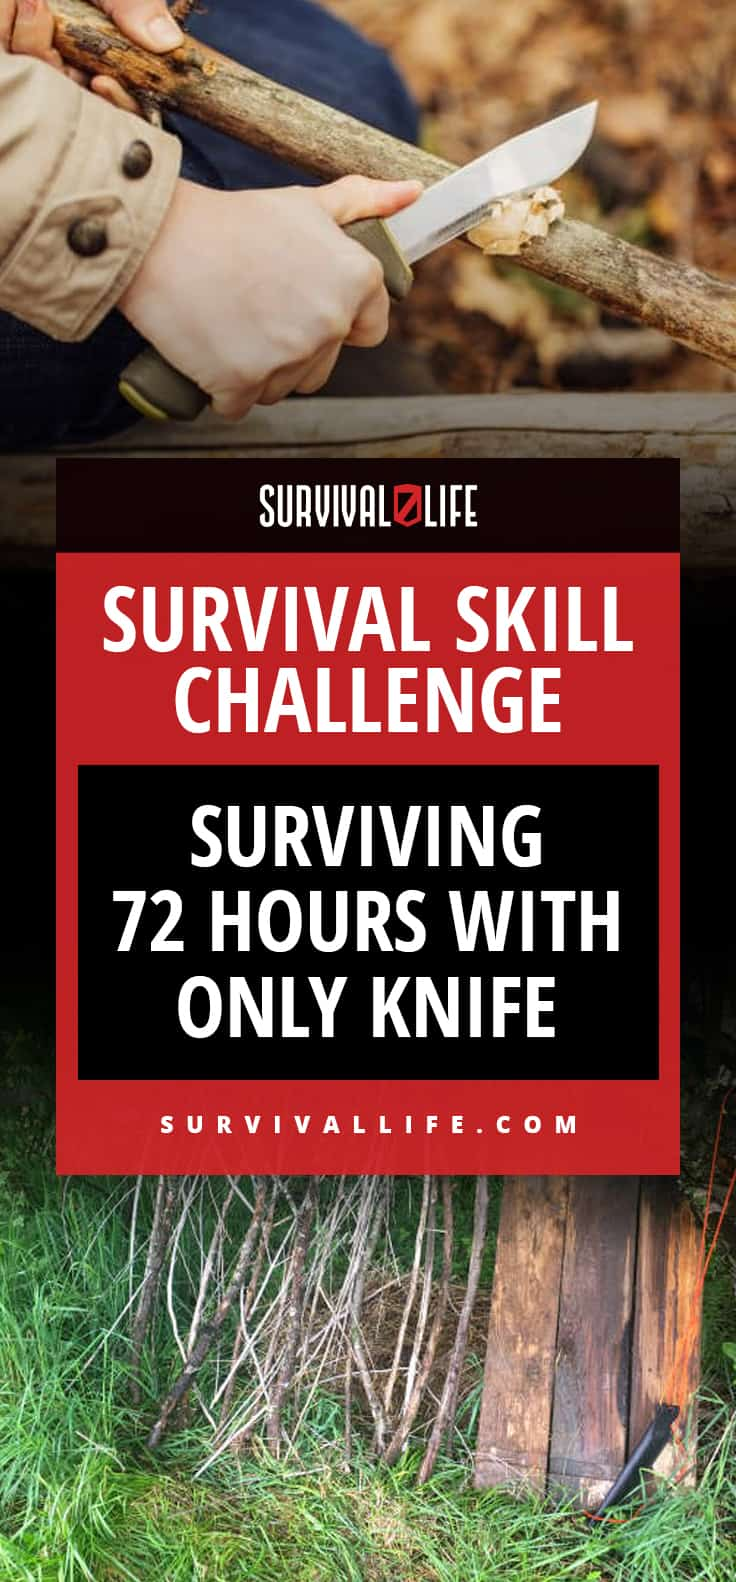 Knife   Survival Skill Challenge: Surviving 72 Hours With ONLY Knife